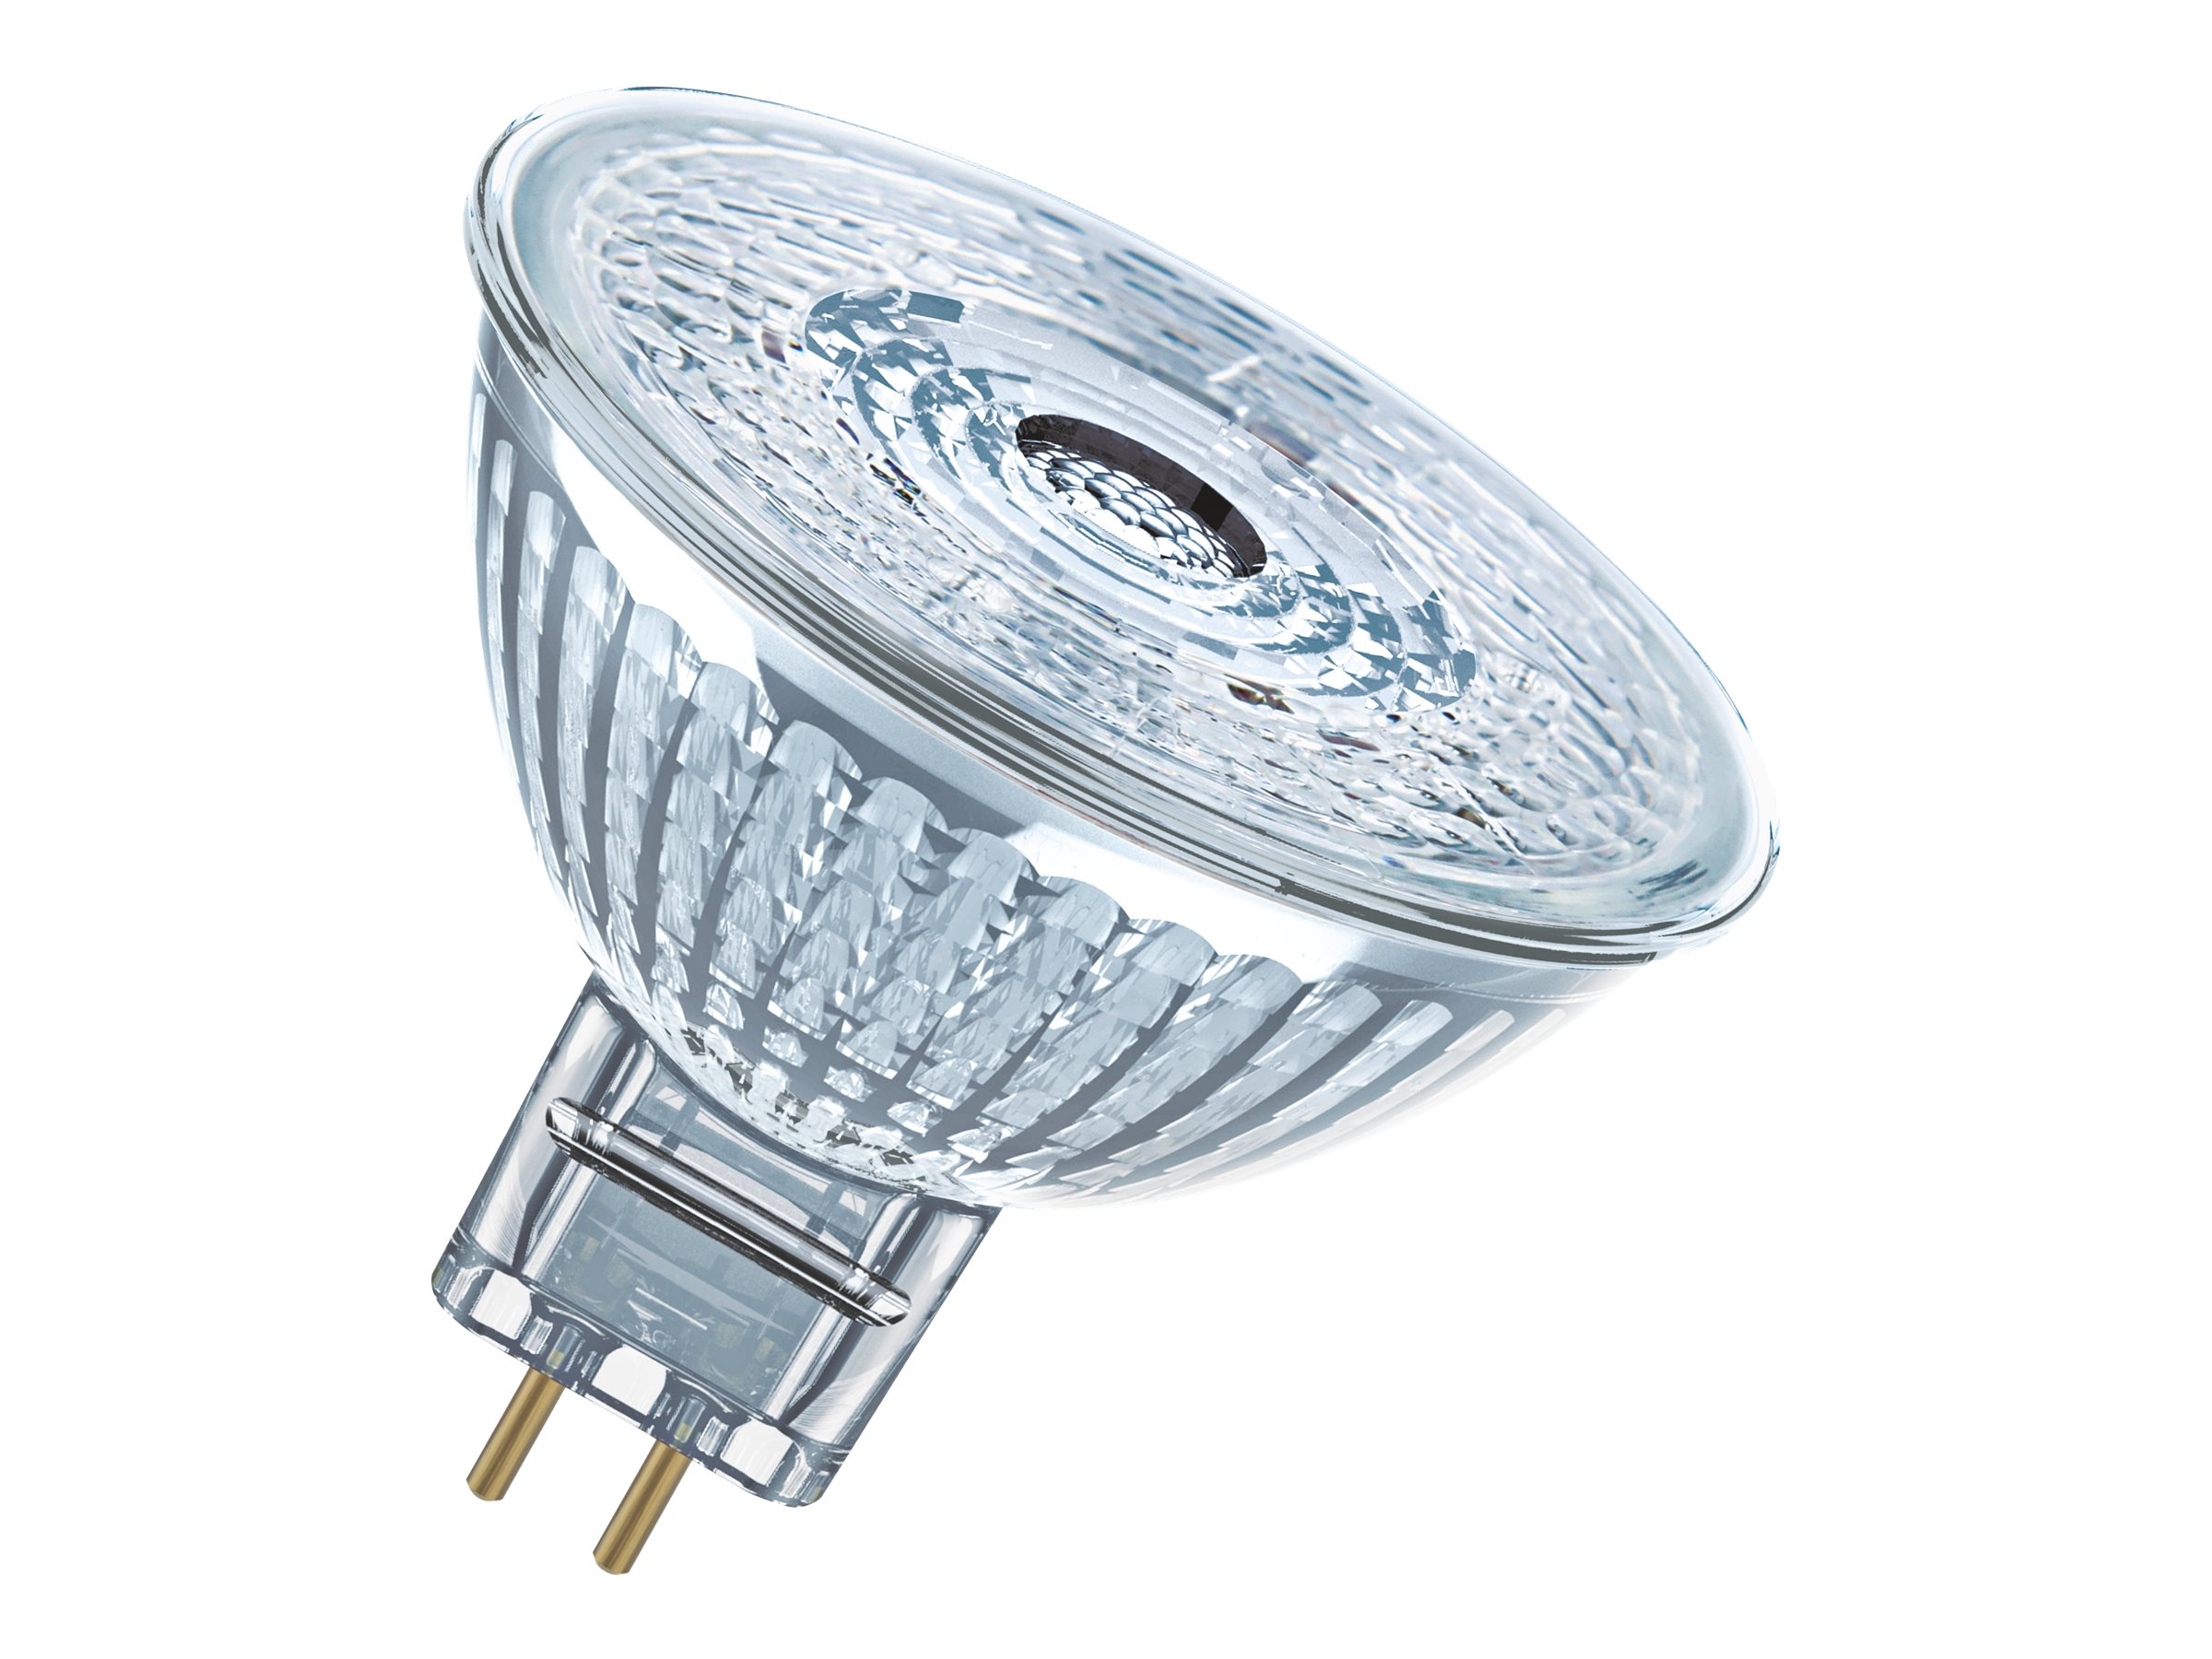 OSRAM PARATHOM advanced - LED-Reflektorlampe - Form: MR16 - GU5.3 - 3 W (Entsprechung 20 W) - Klasse A+